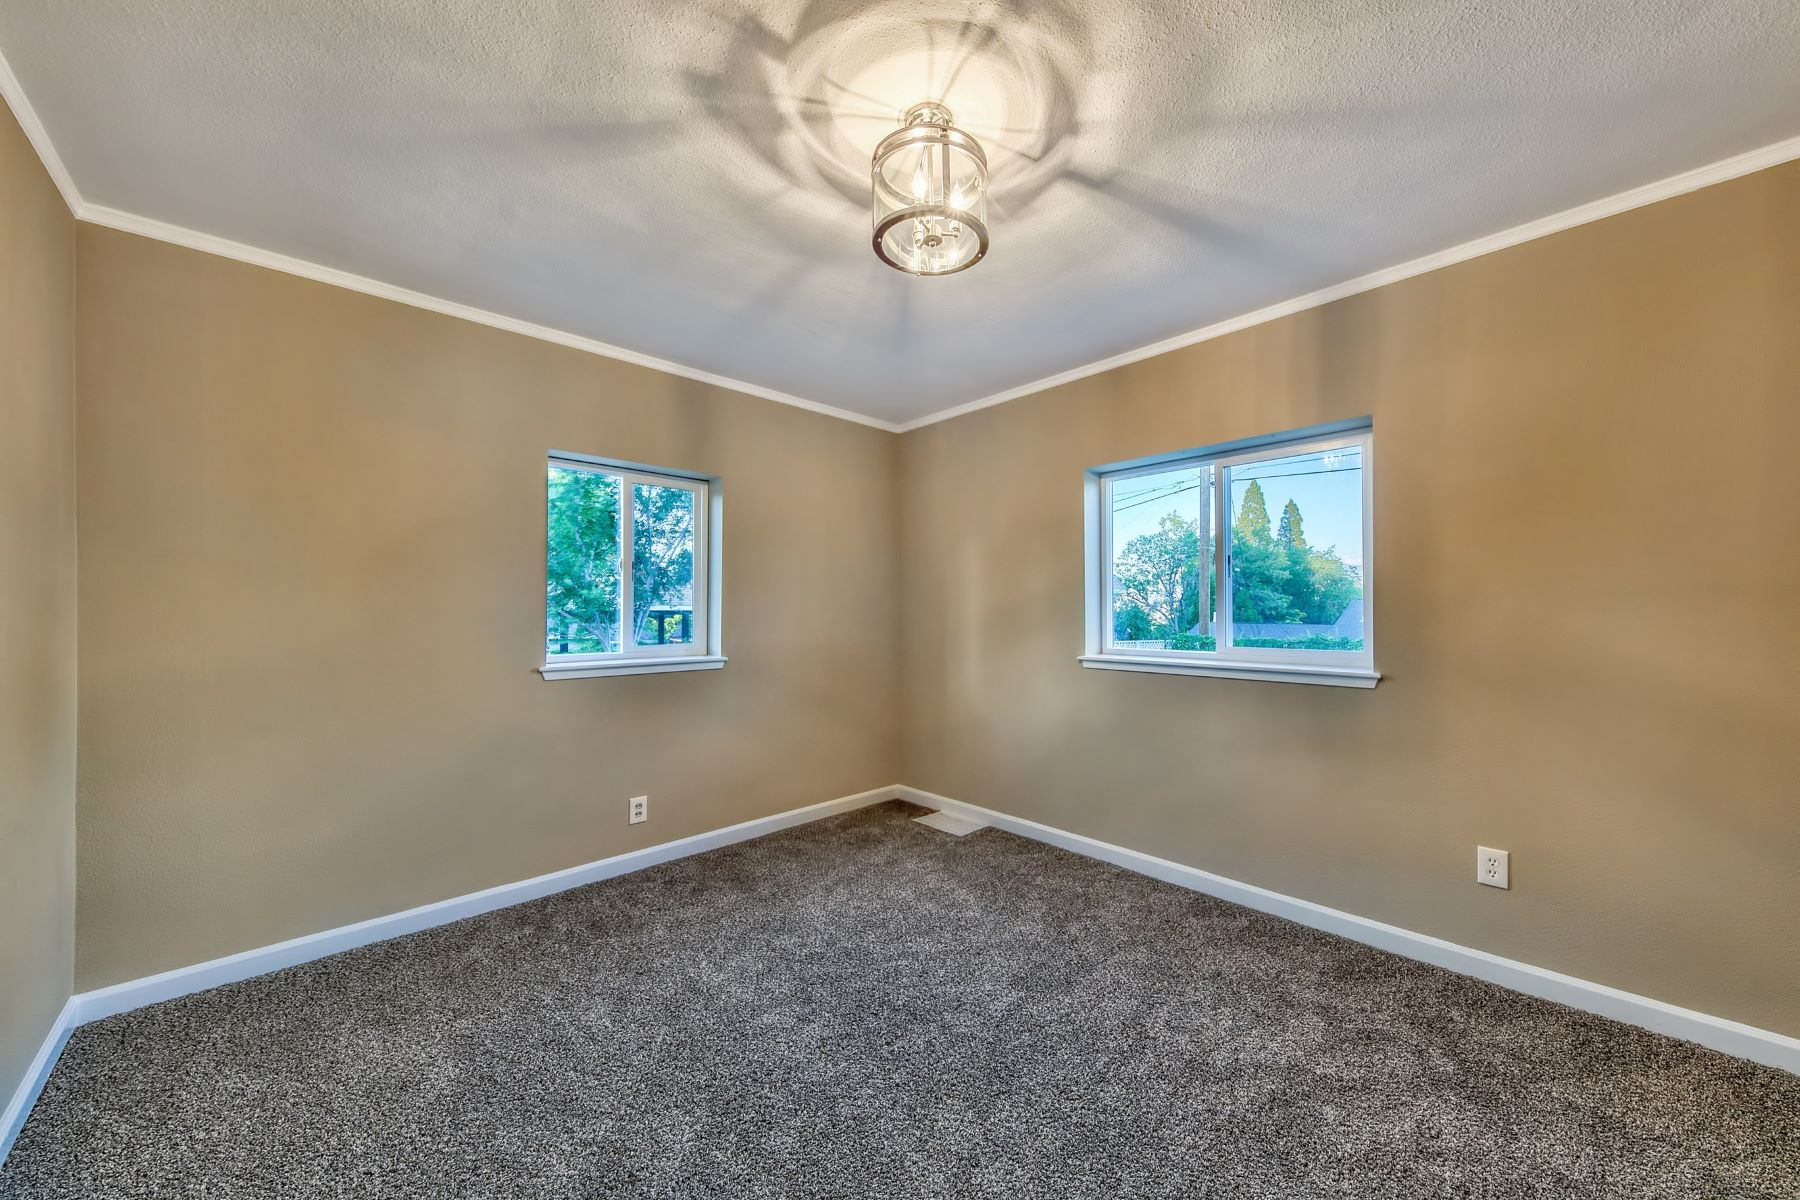 Additional photo for property listing at 2360 Watt St., Reno, Nevada 2360 Watt  St. Reno, Nevada 89509 United States